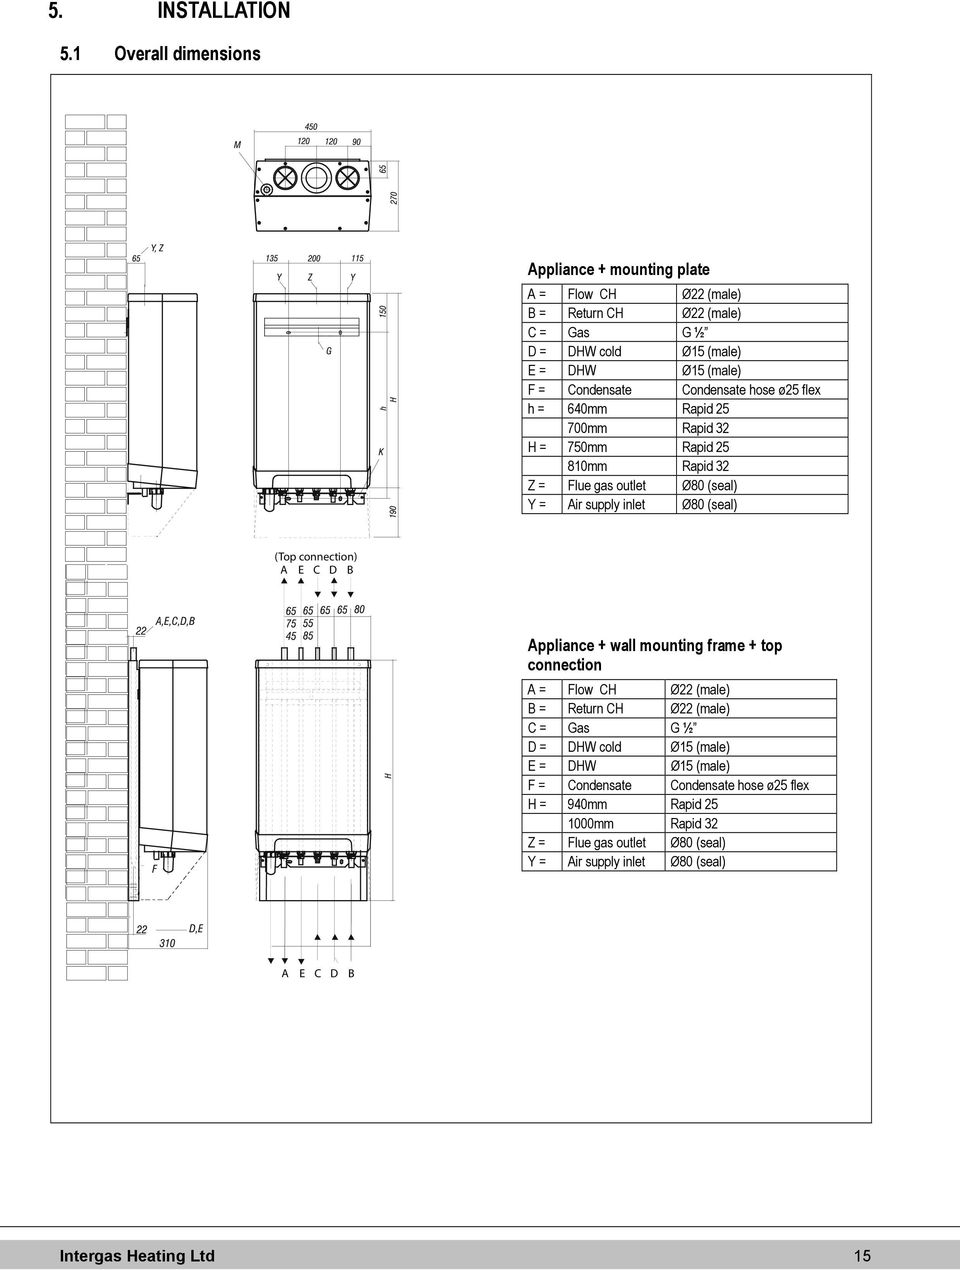 Rapid 25 32 Installation Manual Intergas Heating Ltd Pdf Led Wiring Diagram Condensate Hose Flex H 640mm 700mm 750mm